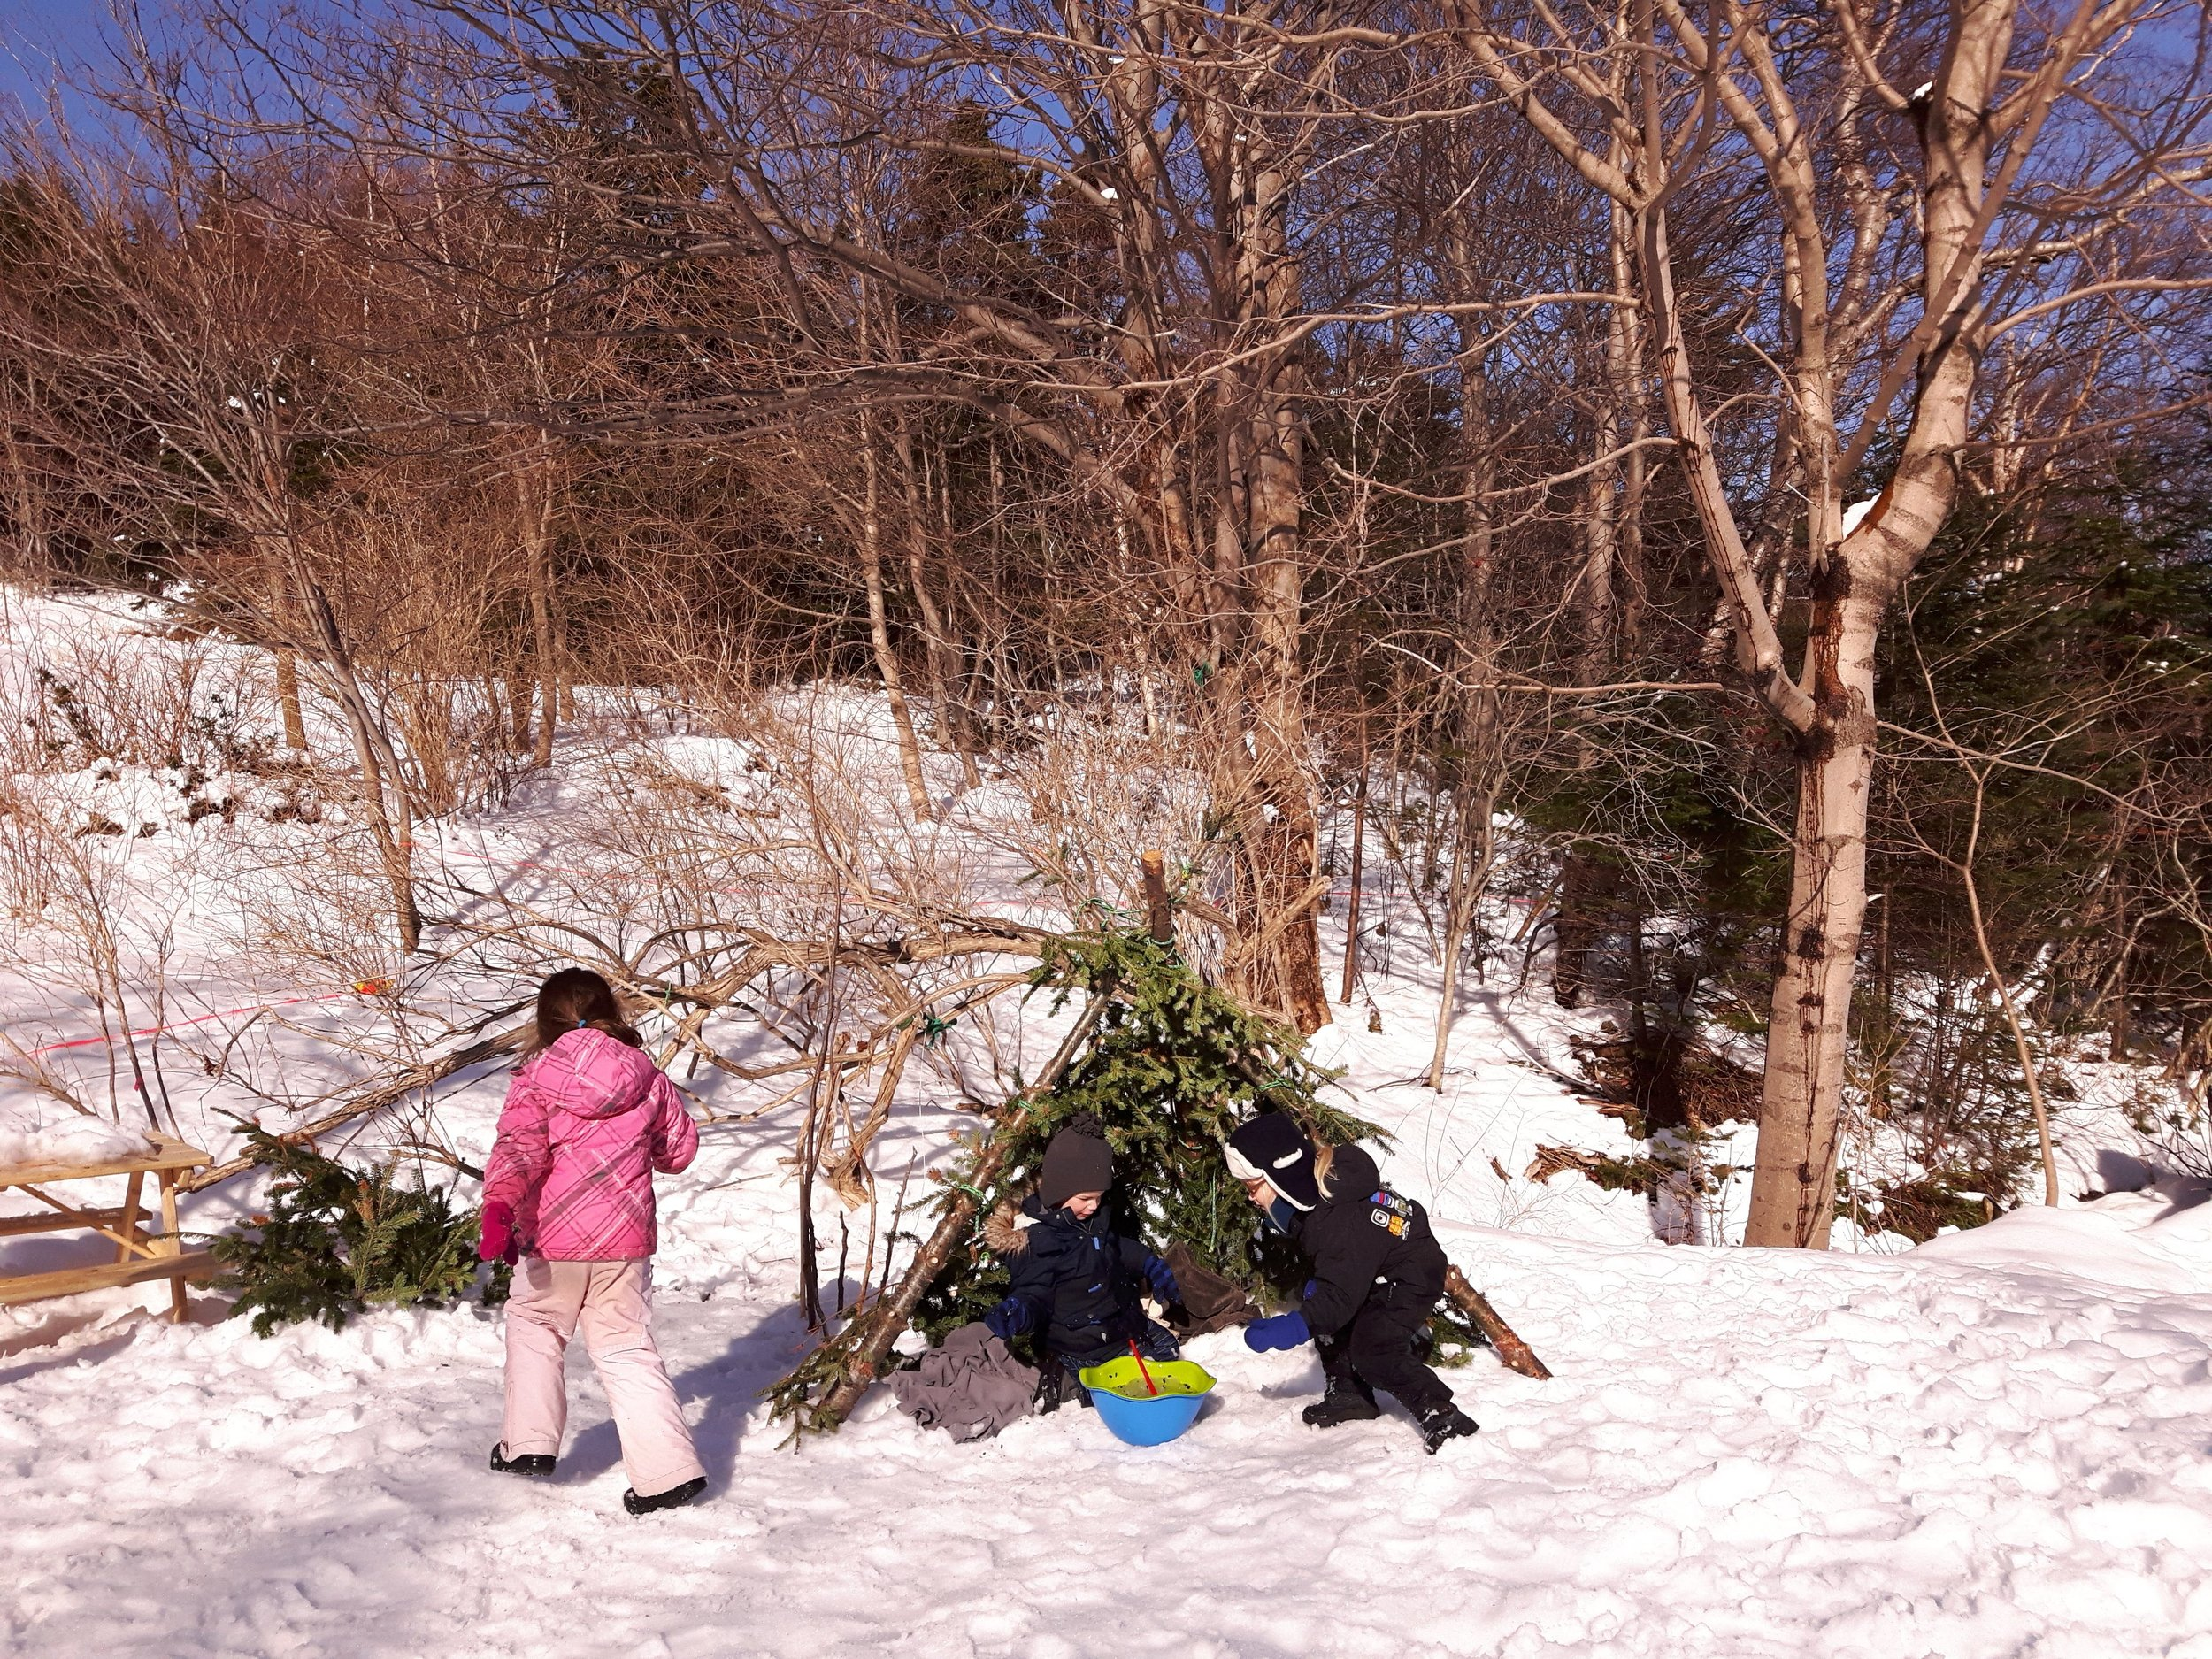 Yes, we can forest school in the winter too! - Children are adaptable and resilient - we need to remember this. Our northern climate does pose a challenge to the safety of children being outside for extended periods of time during extreme cold snaps, but that is why we have a neighbourhood indoor space to warm up, have snacks / naps, regroup, and continue our learning from our outside time!